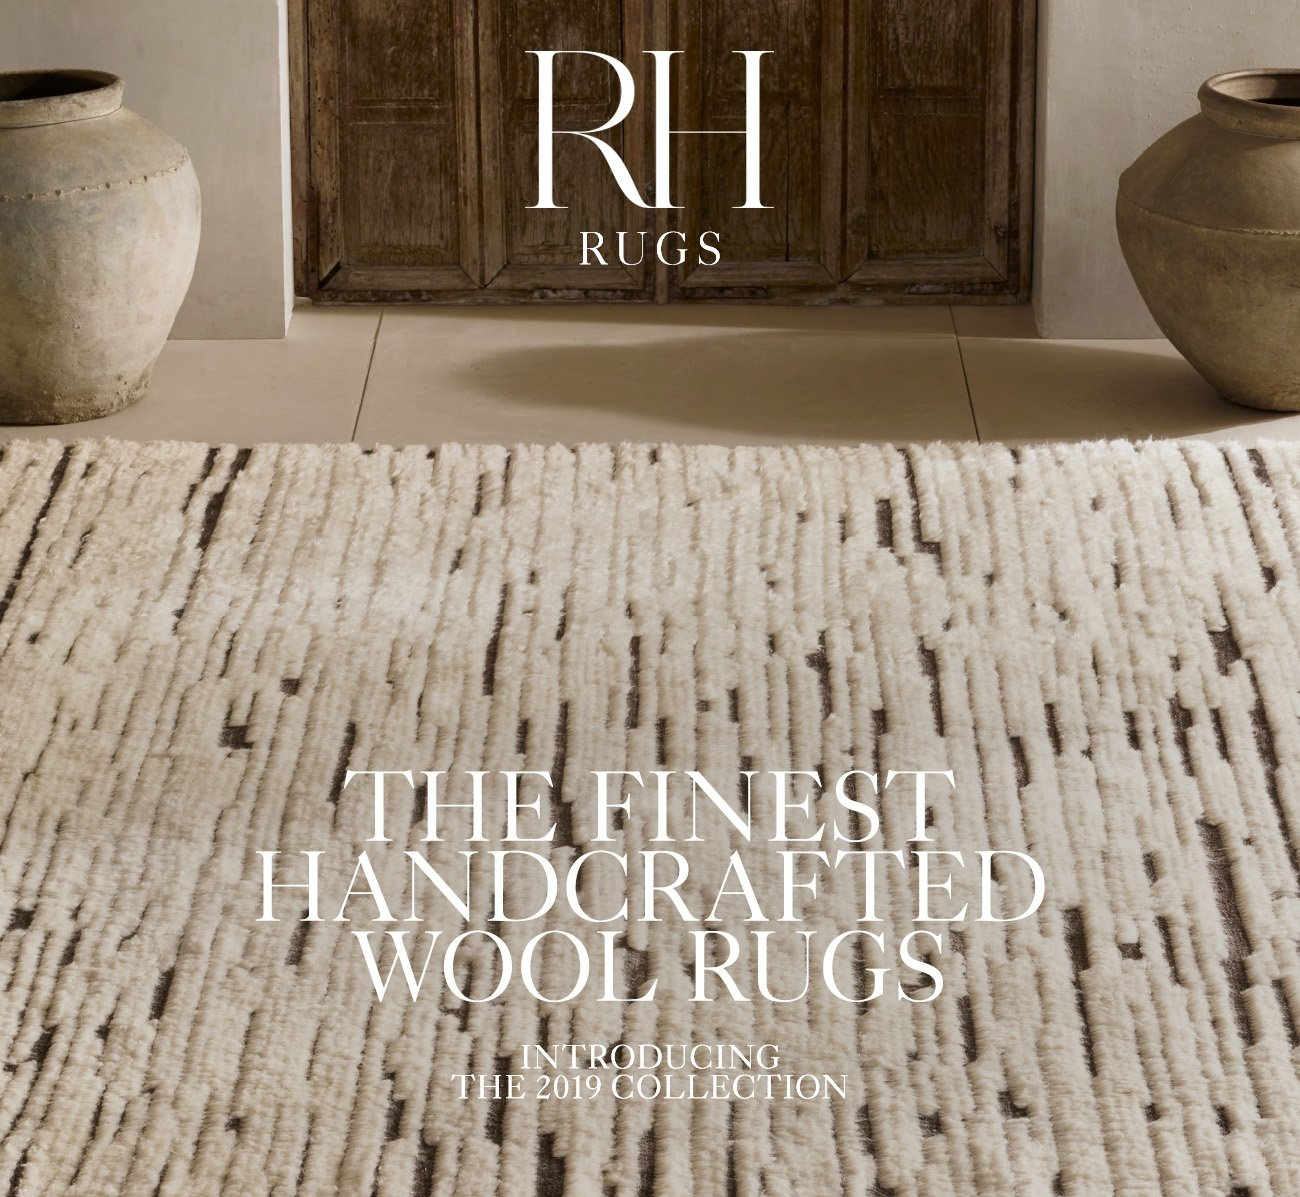 RH, The Finest Handcrafted Wool Rugs, Introducing The 2019 Collection